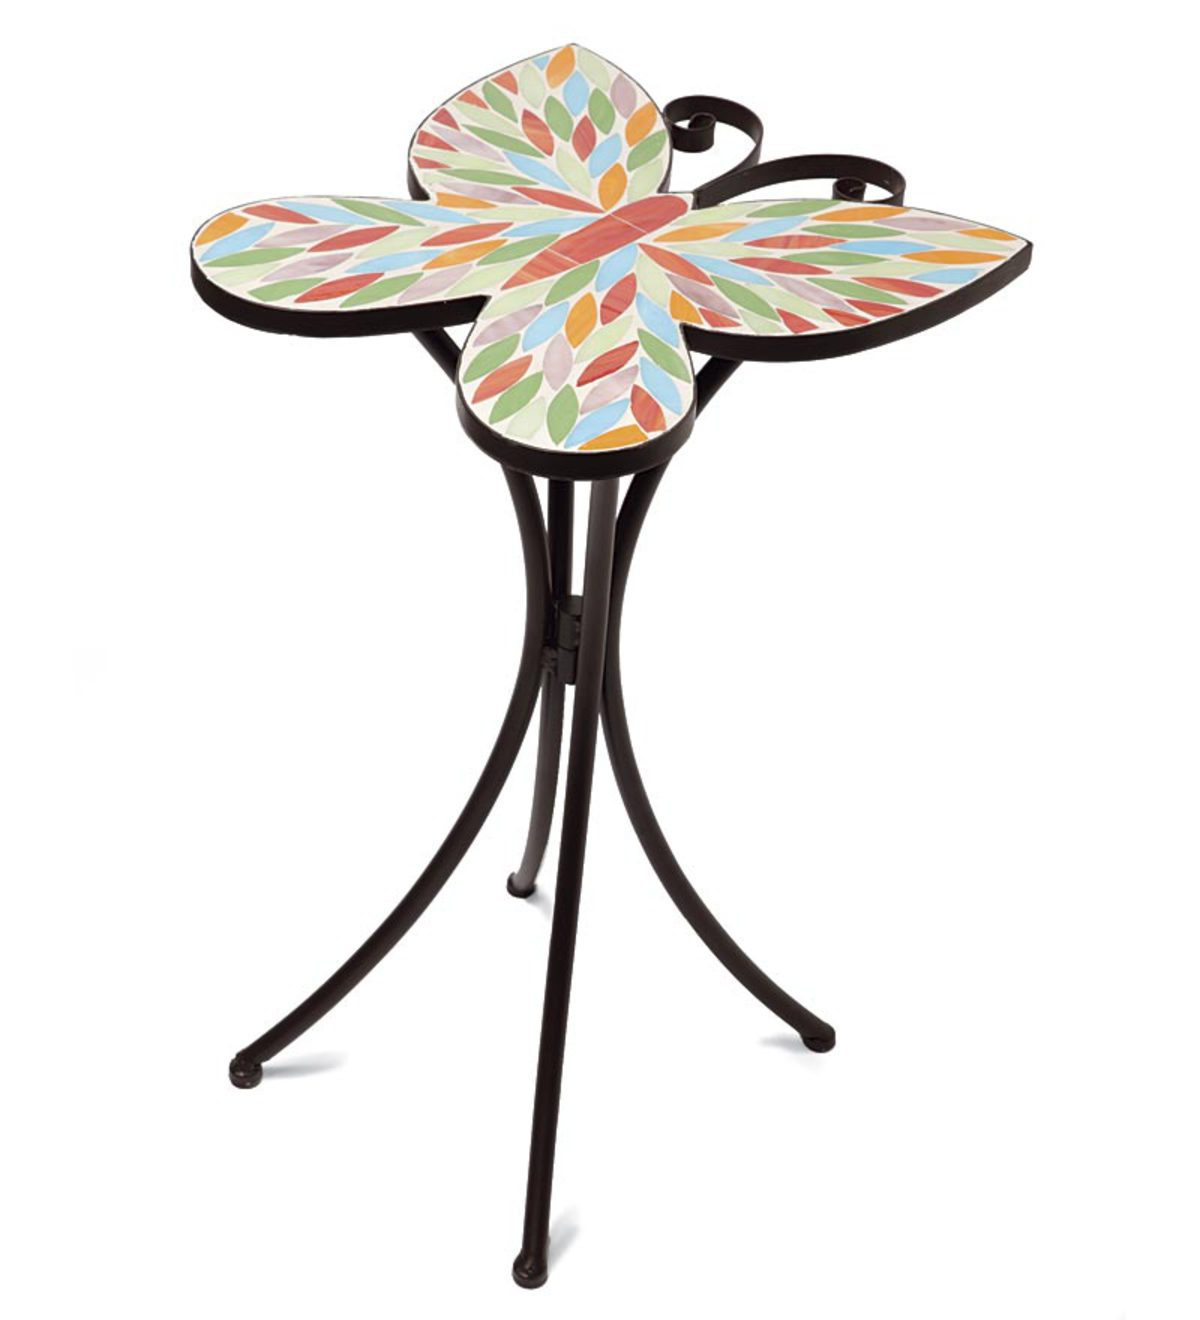 butterfly and flower stained glass mosaic accent table plowhearth outdoor outside grills storage bench with cushion ikea target kitchen tall end inch wide white ginger jar lamps